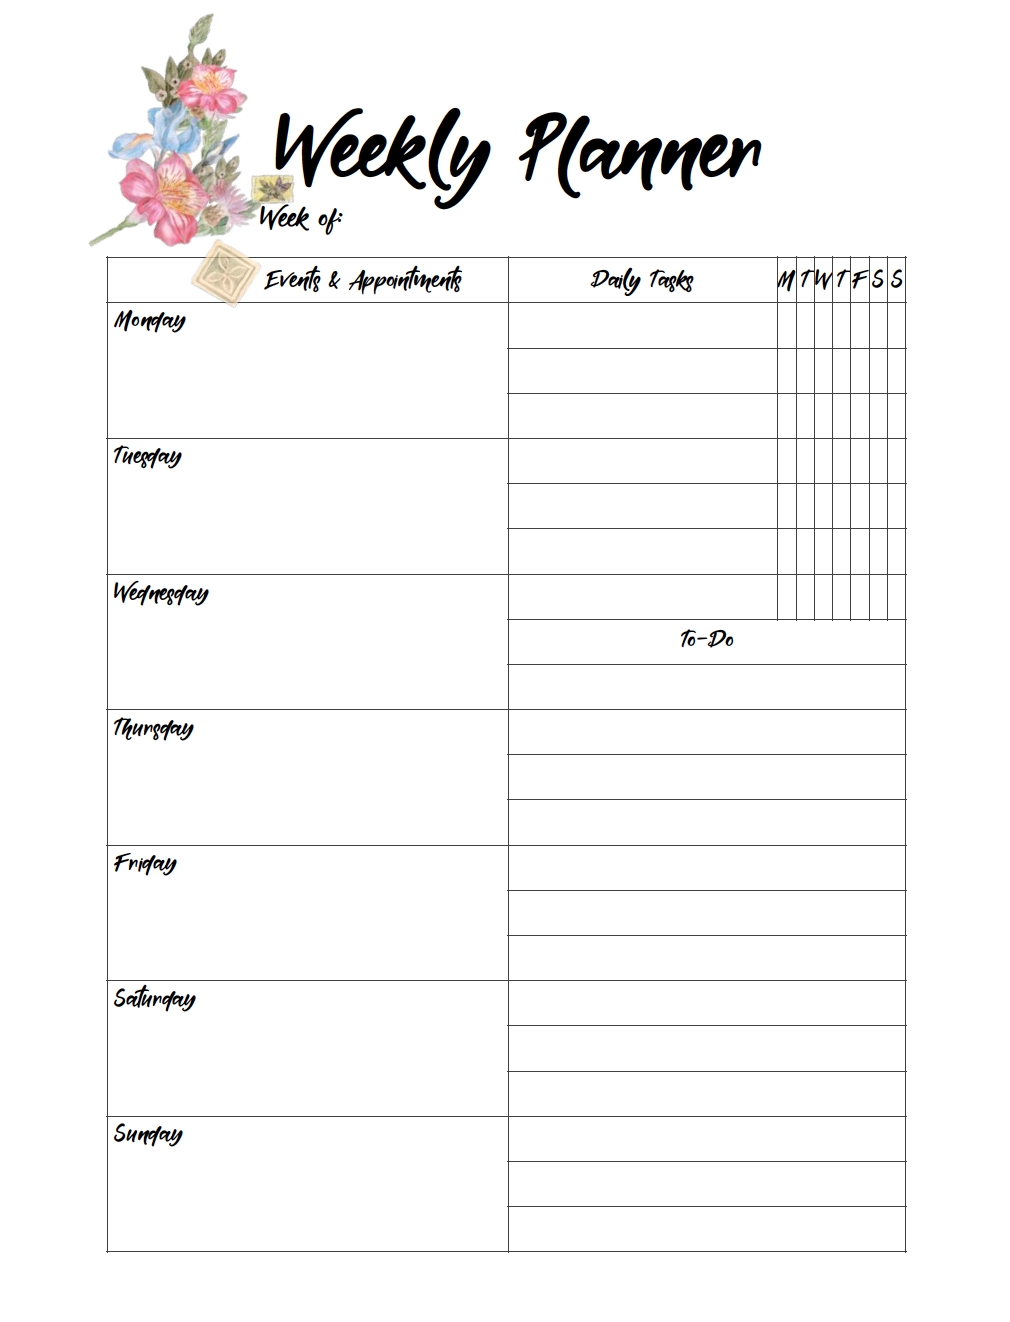 Free Printable Weekly Planners: Monday Start for Monday To Friday Weekly Planner